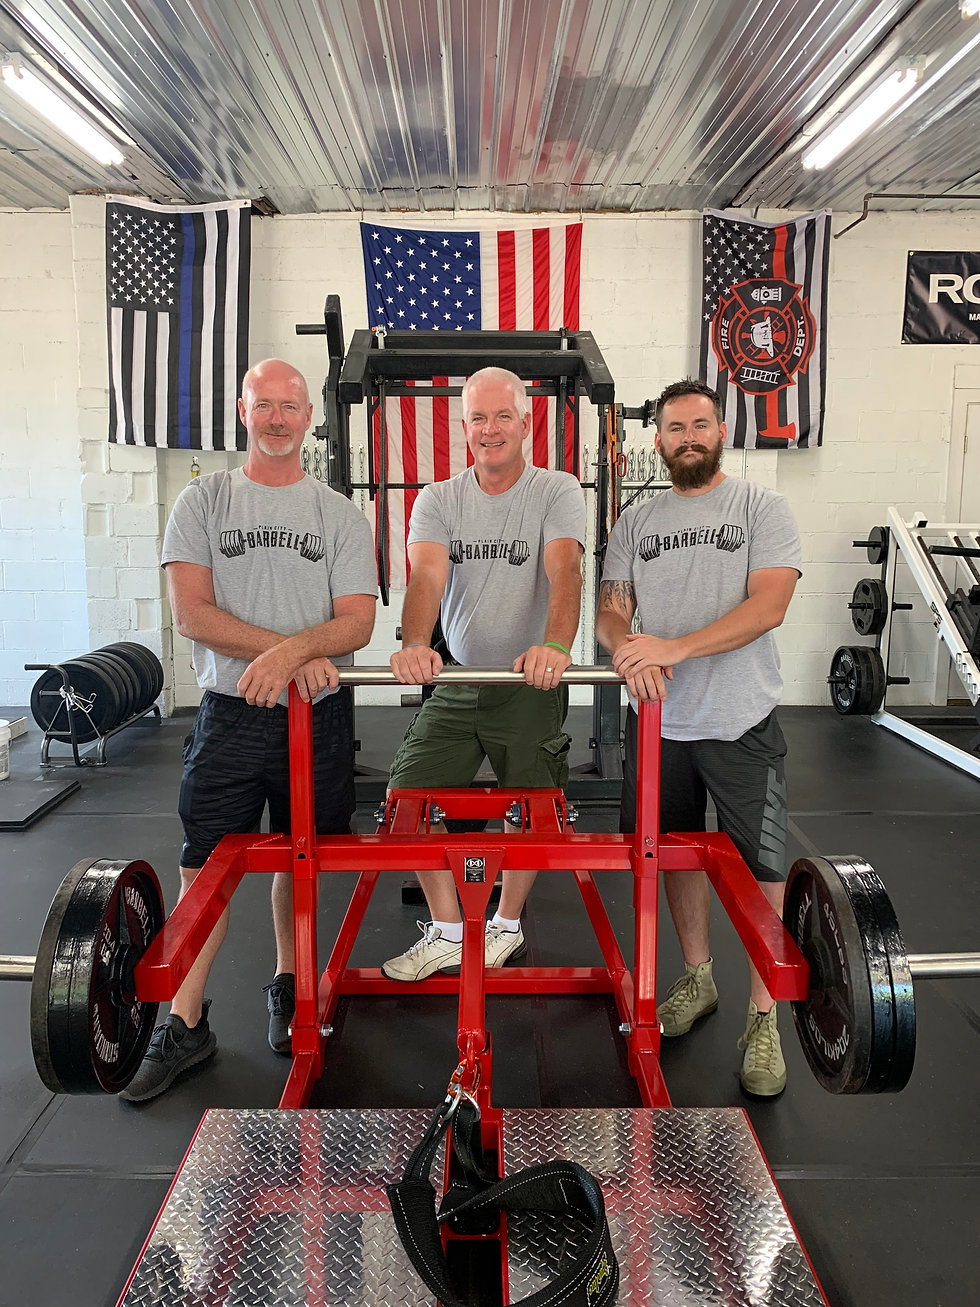 PC Barbell Owners pic.jpg